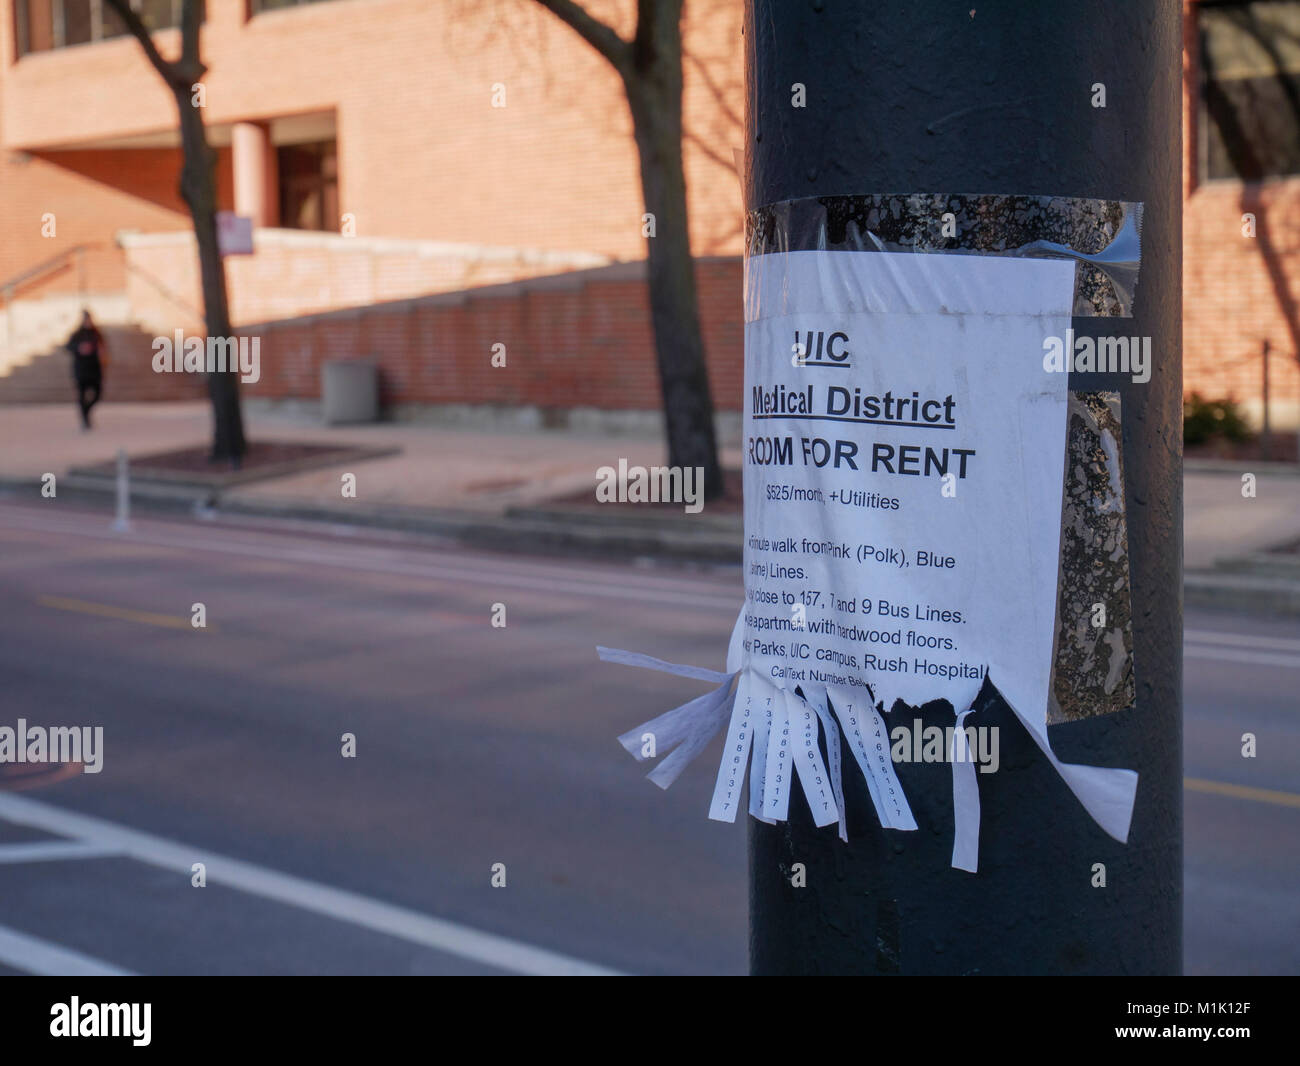 Room for rent sign taped to light pole. Illinois Medical District, Chicago. - Stock Image